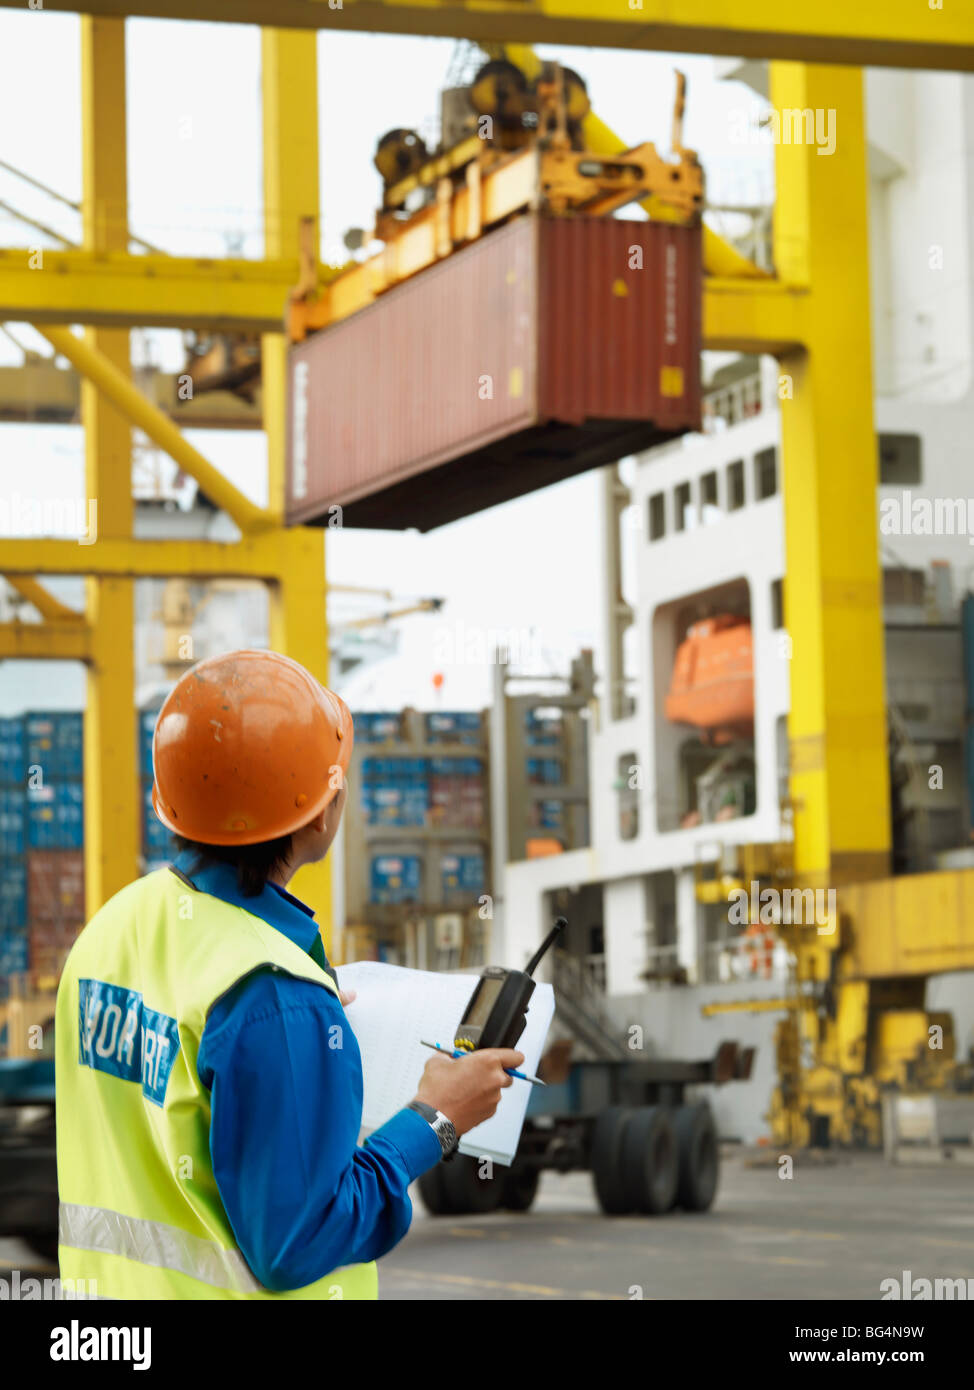 A port worker overseeing a the loading of a ship at a commercial container shipping port. - Stock Image